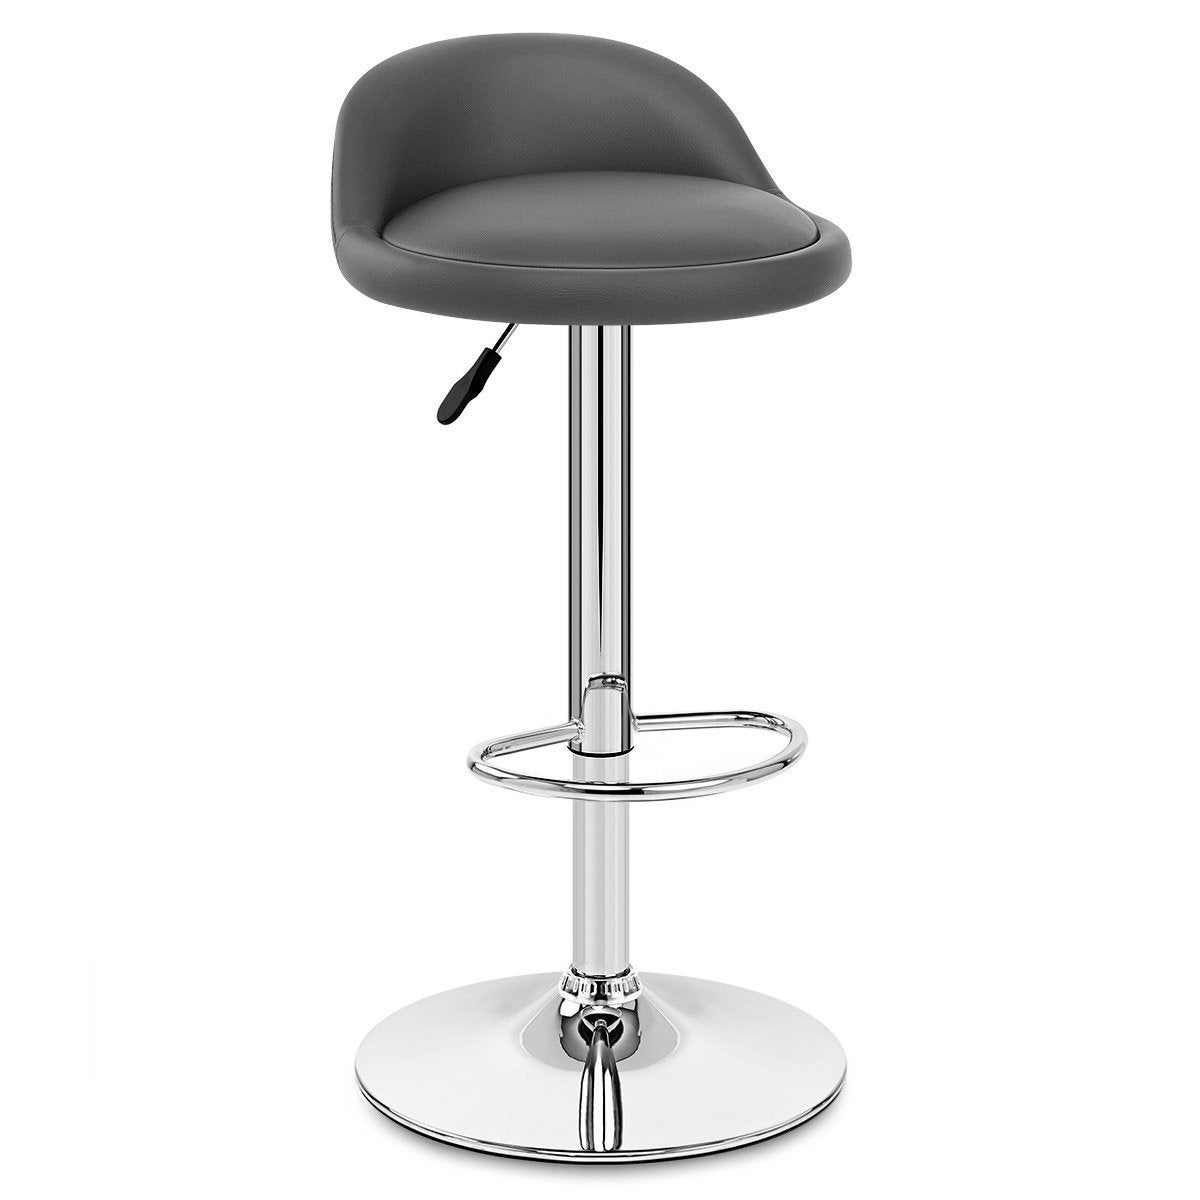 Tabouret De Bar Design Simili Cuir Gris Lulu Mdt